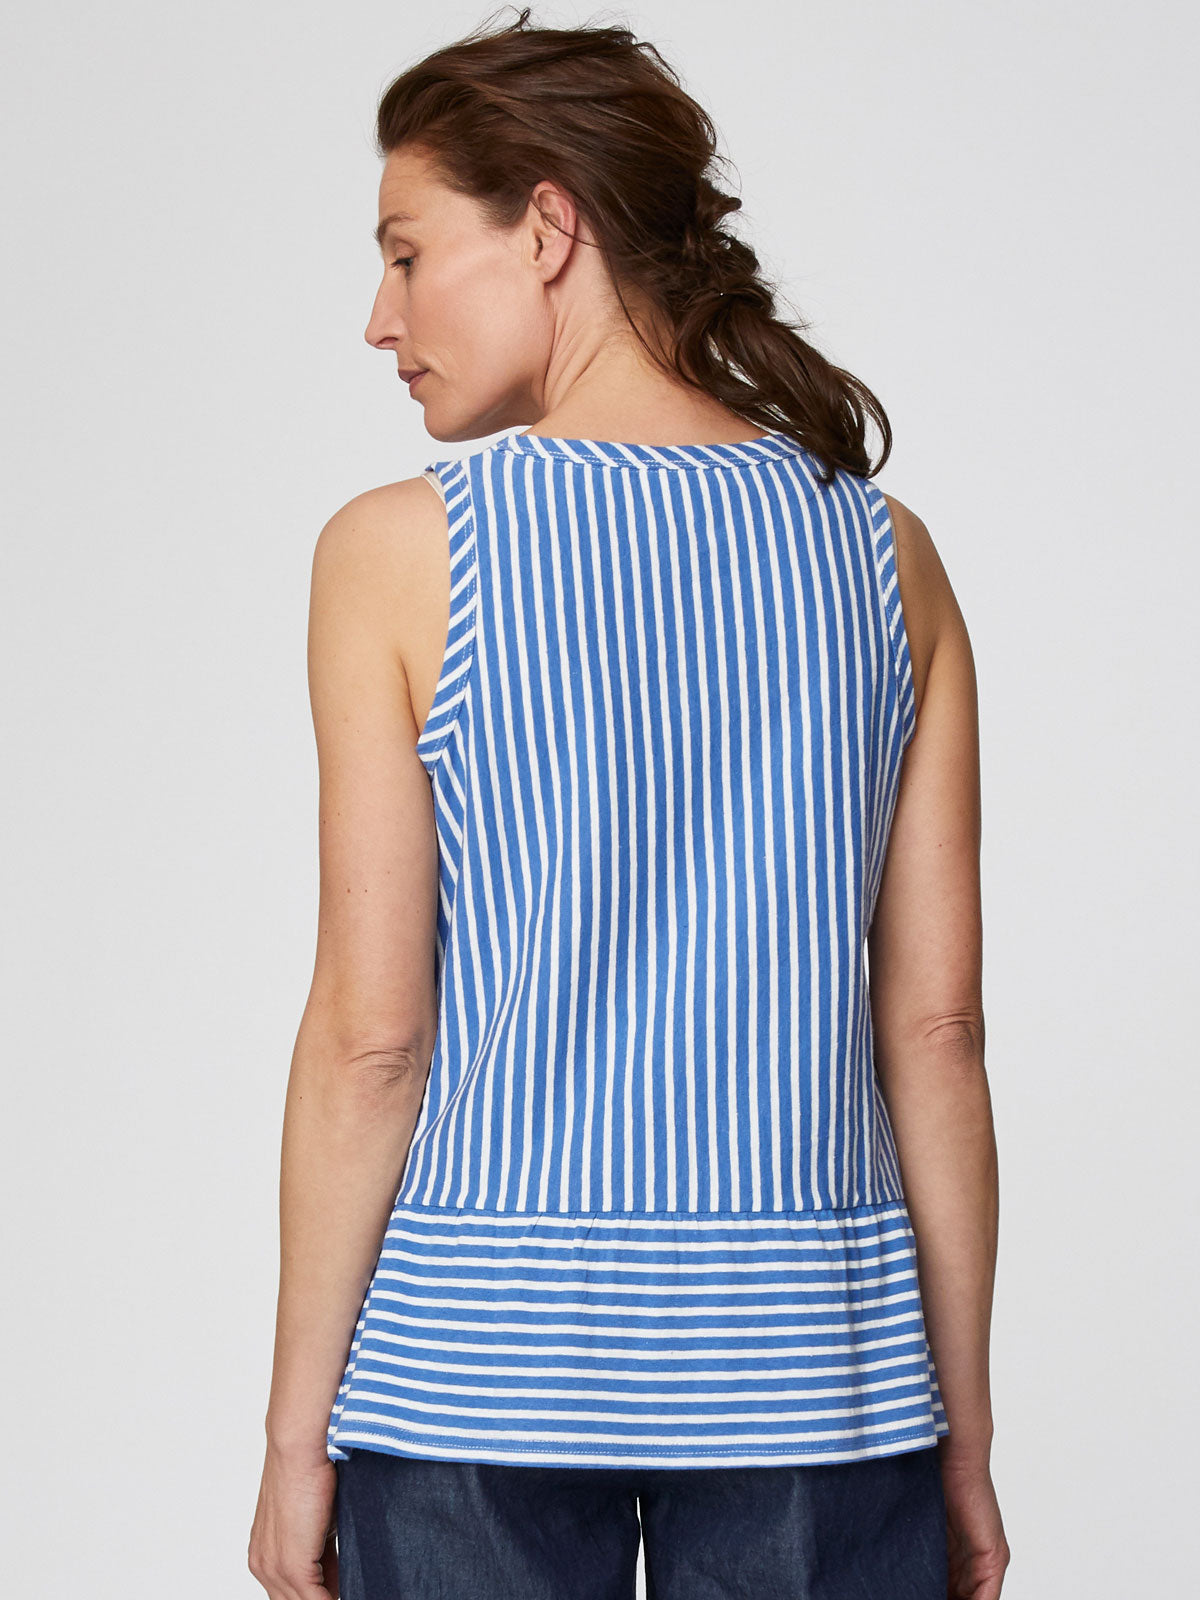 Thought Simonia Vest Top for Ladies in Marina Blue